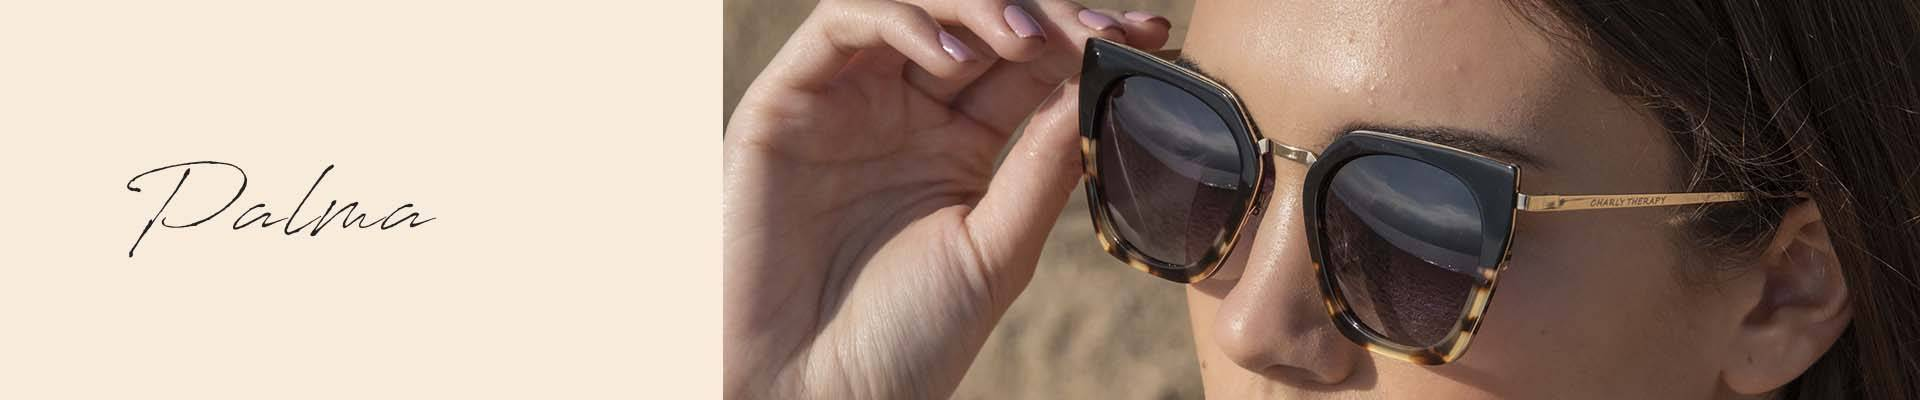 Palma, cat-eye sunglasses from Charly Therapy